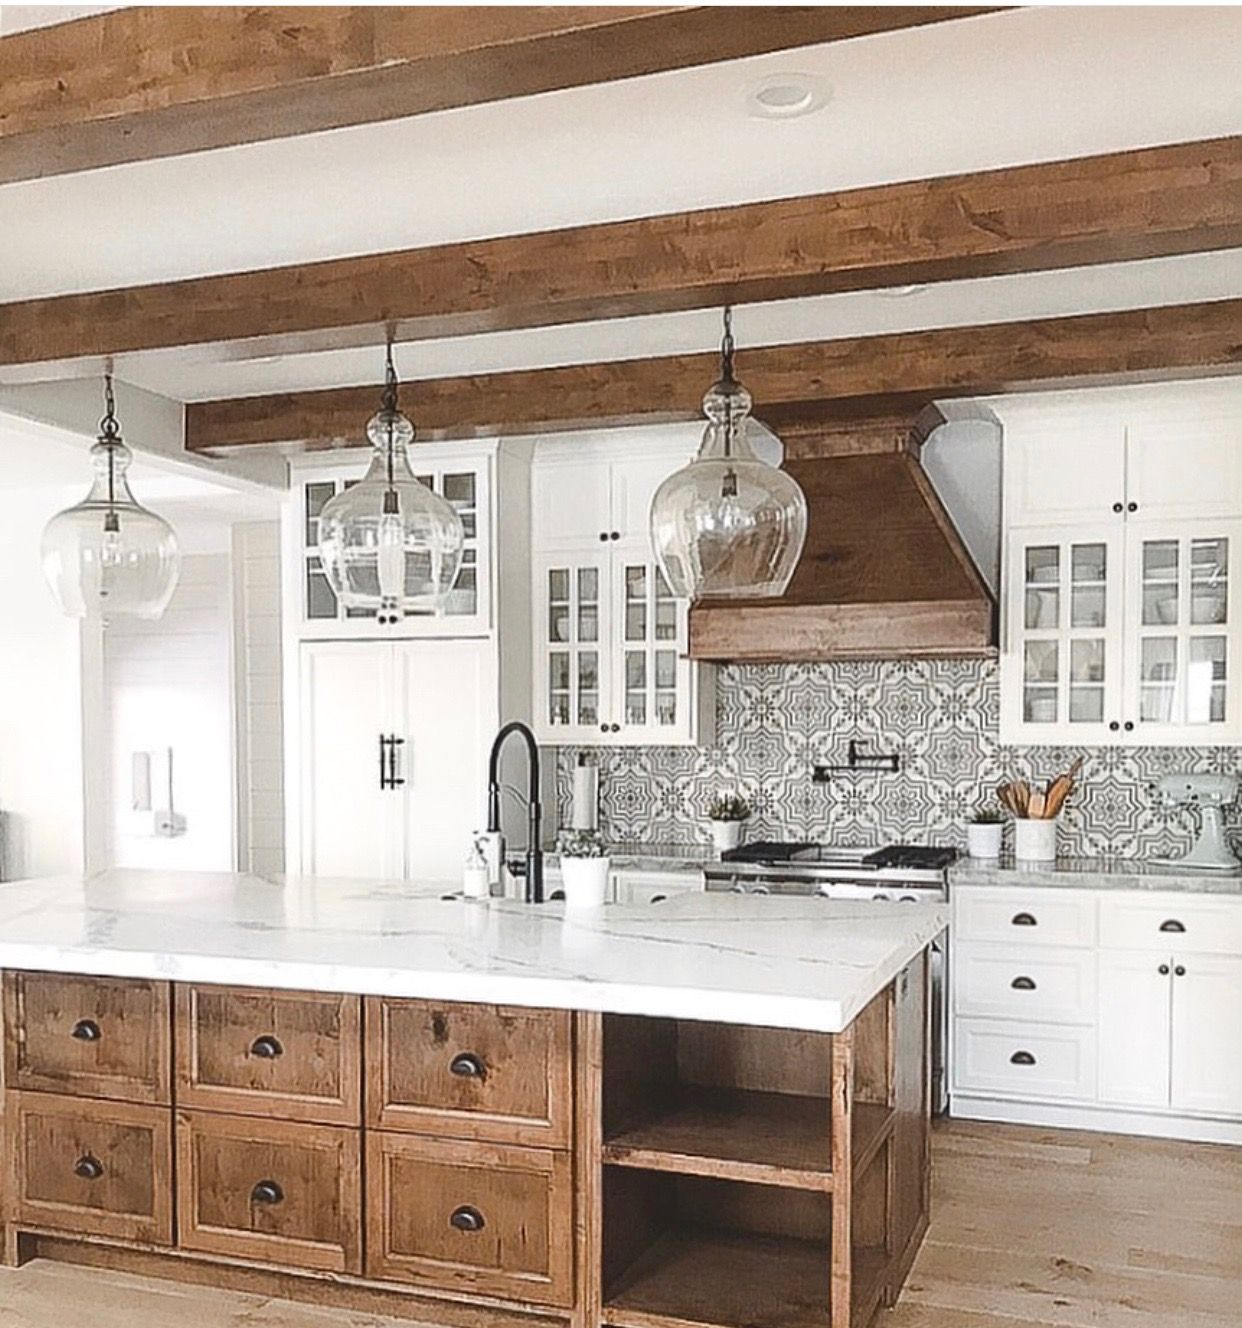 wood island white cabinets white counter tops kitchen remodel small farmhouse kitchen design on farmhouse kitchen small id=66304